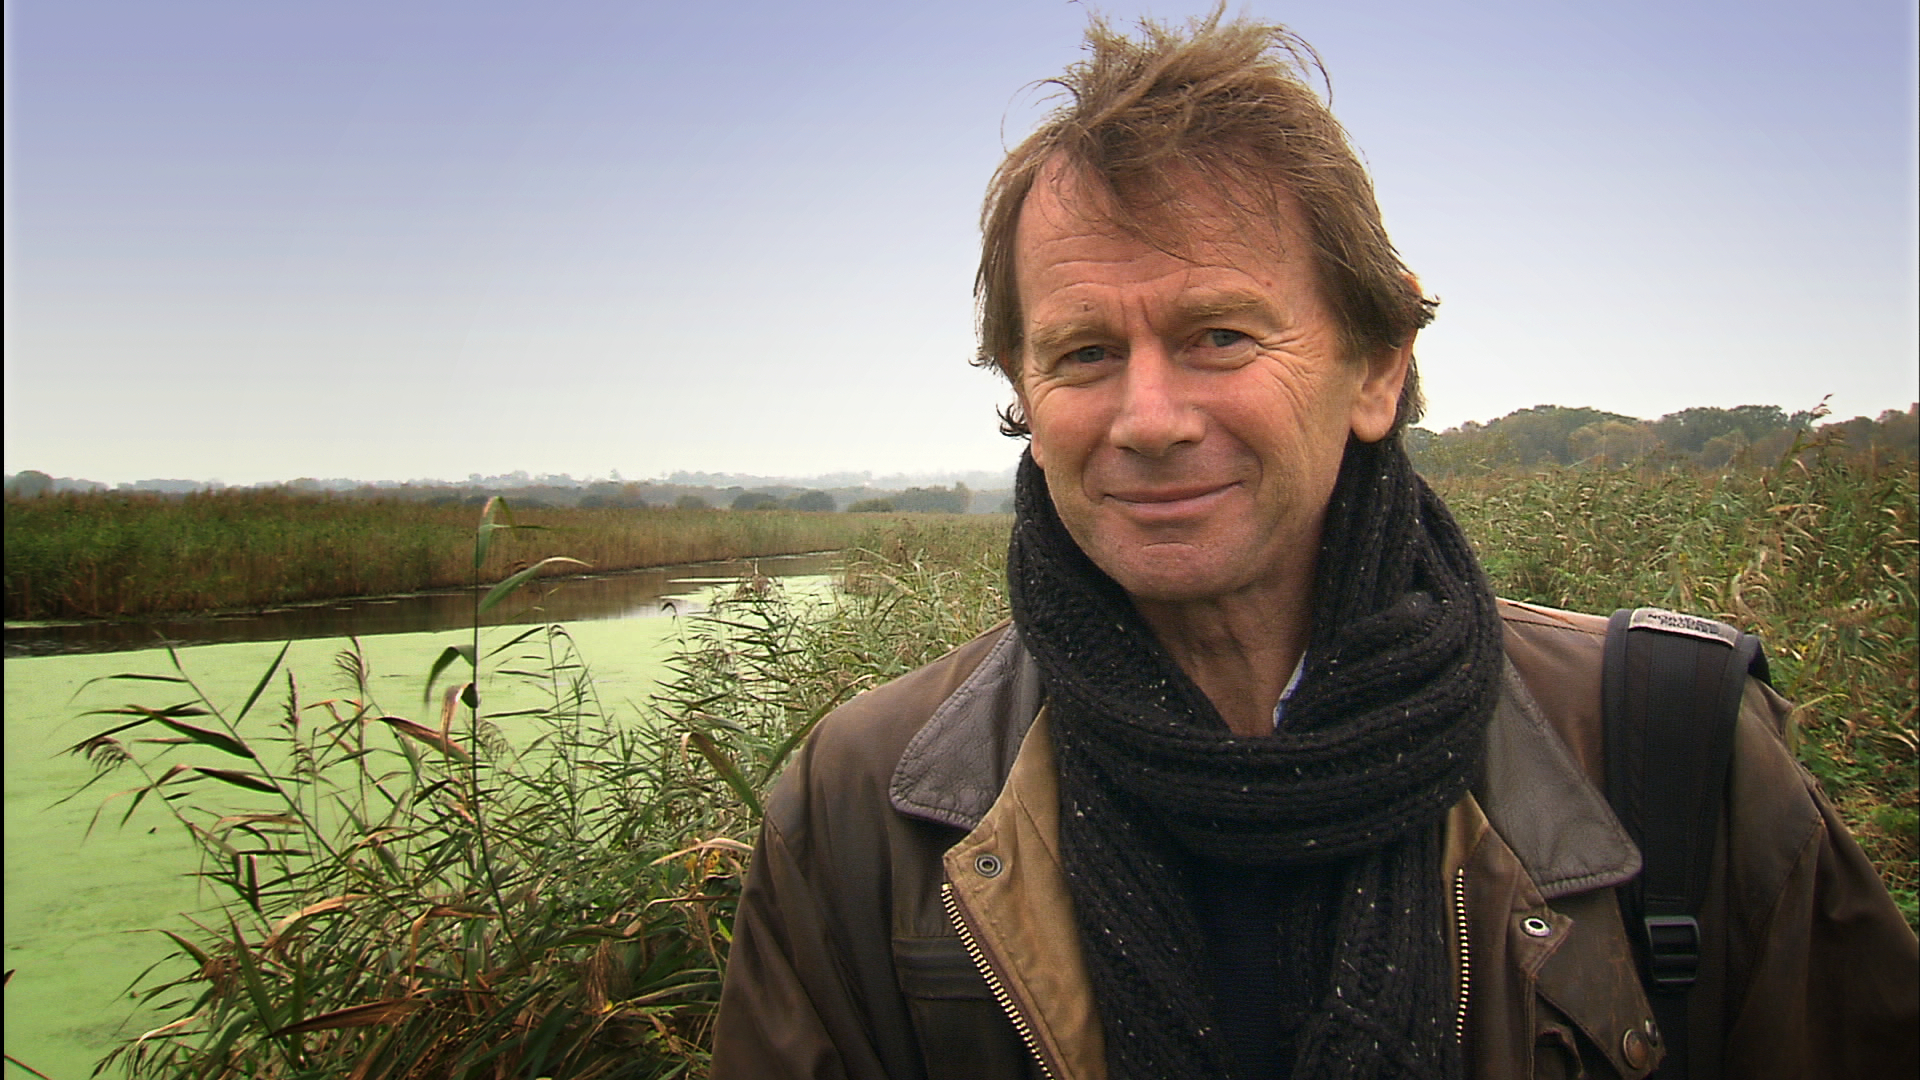 Michael Wood - Historian, broadcaster and filmmaker